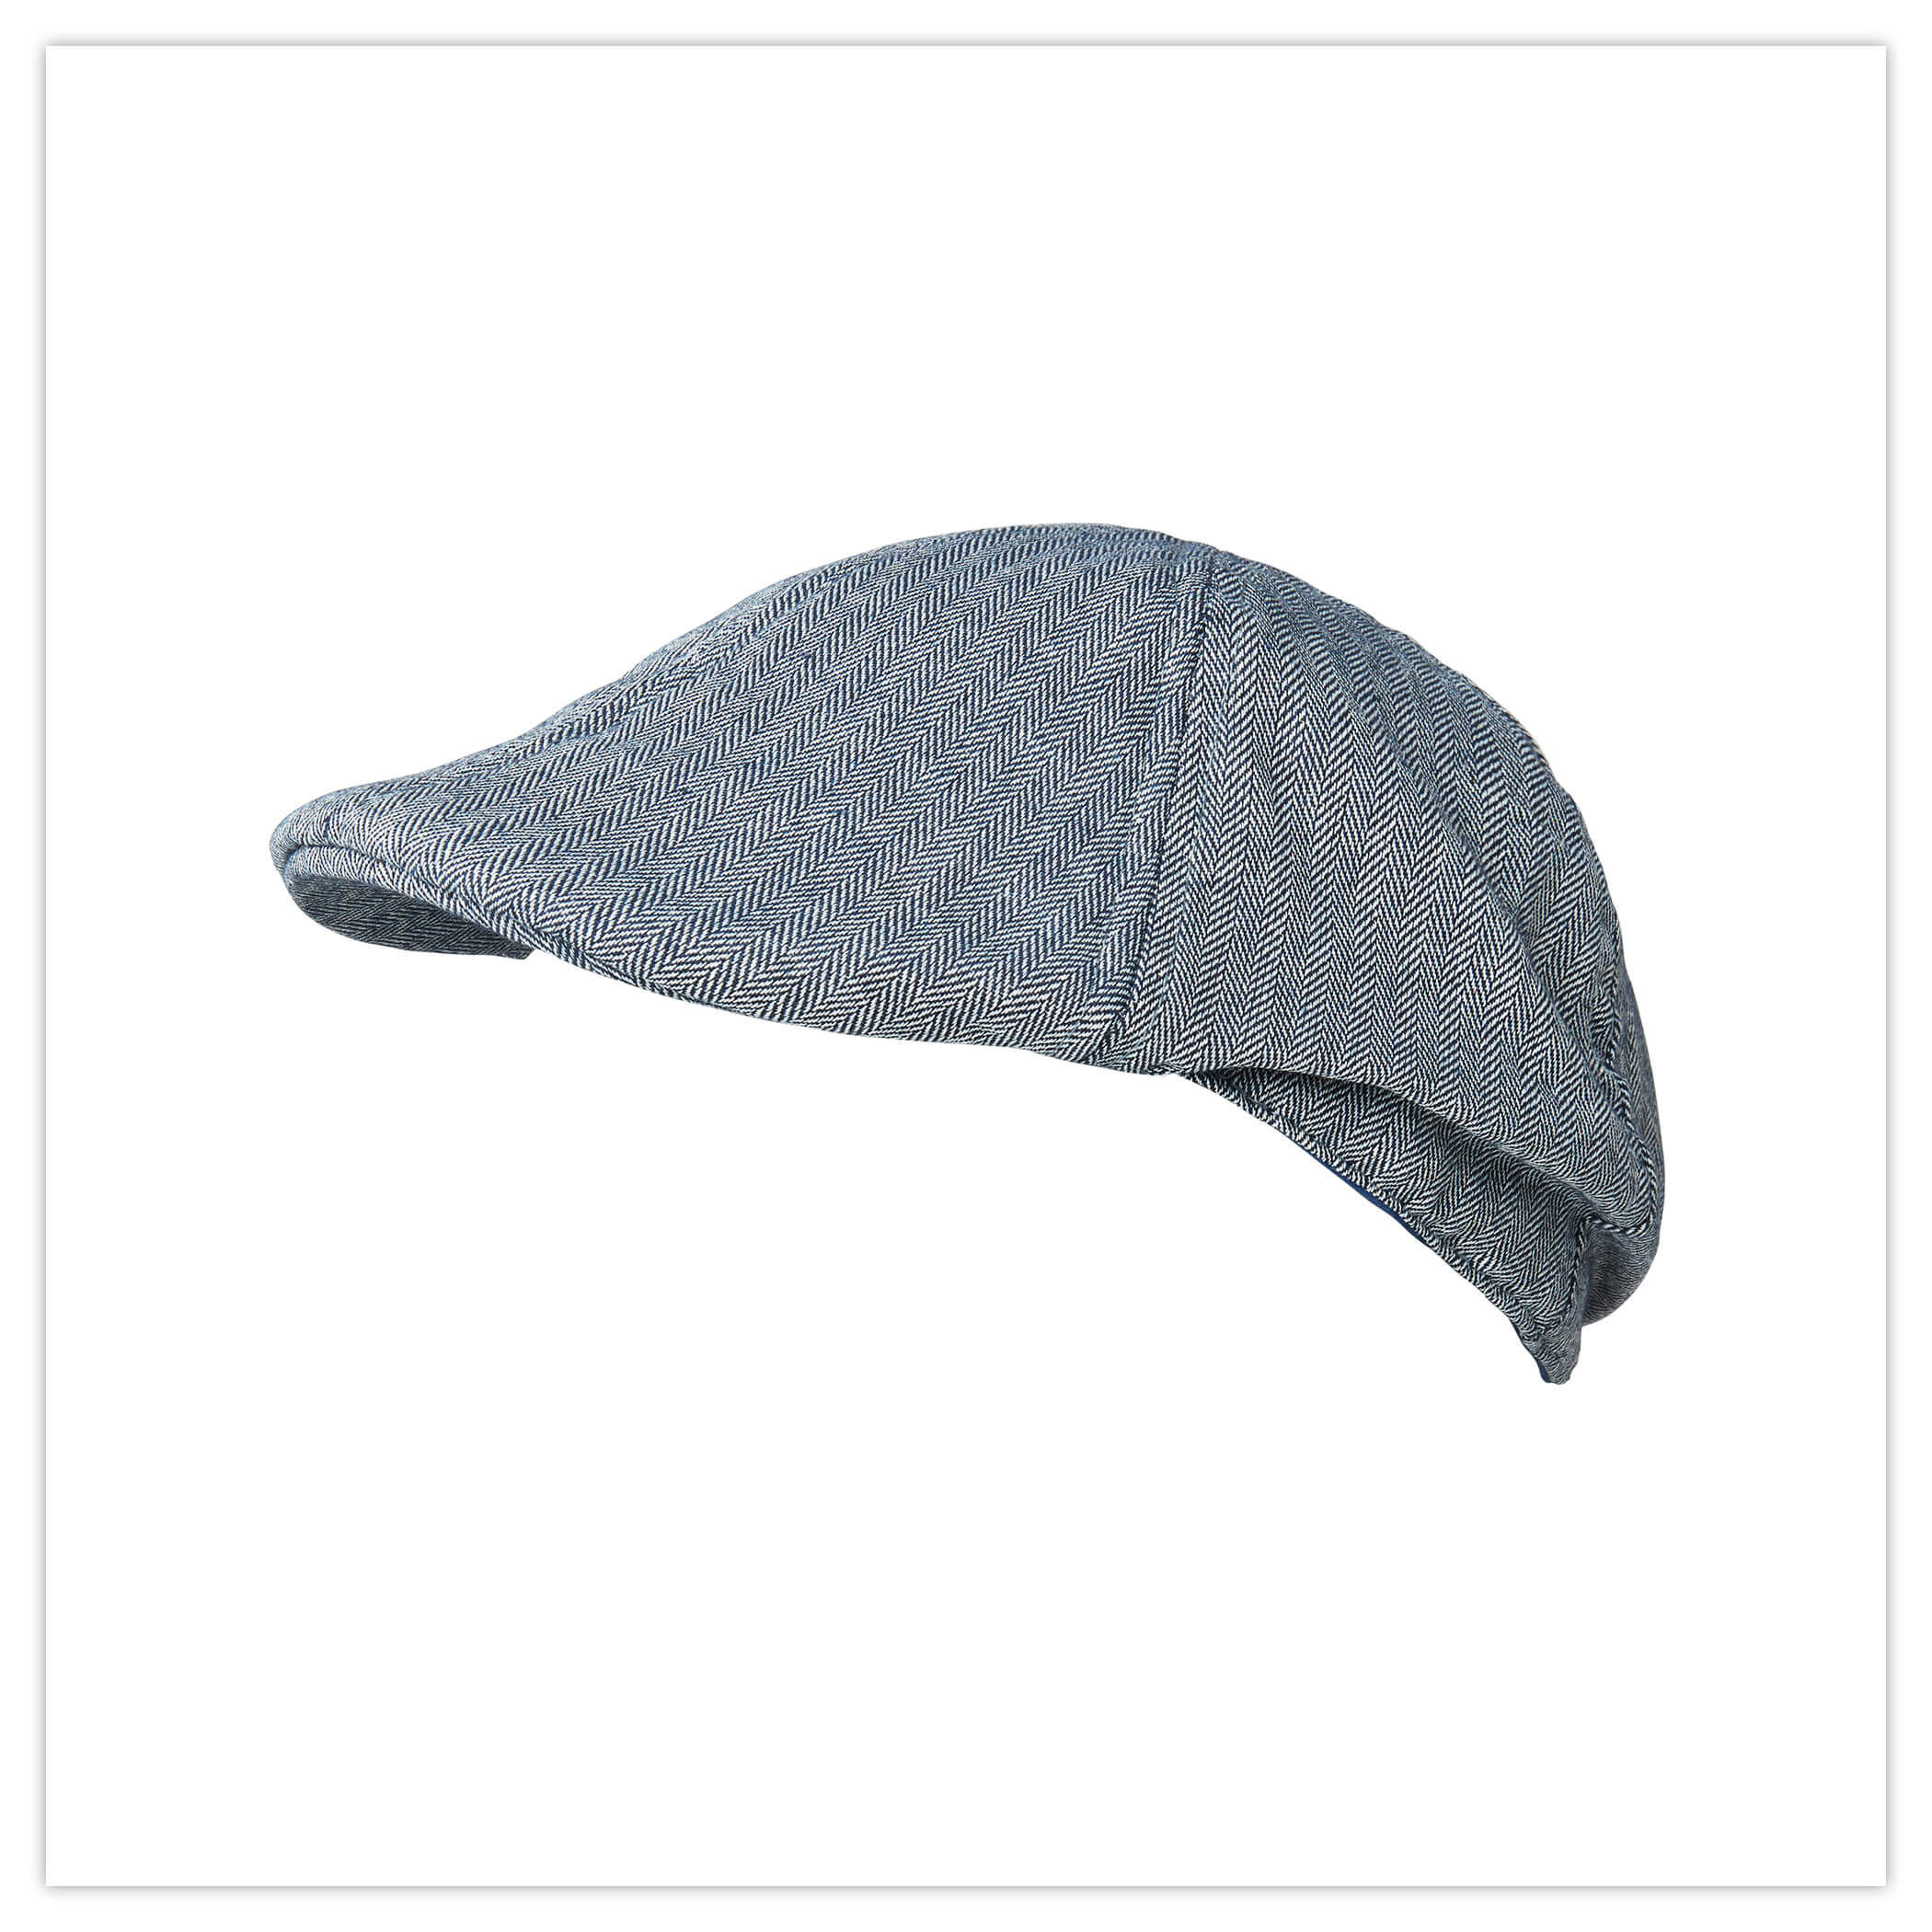 Joe Browns Herringbone Peaky Flat Cap